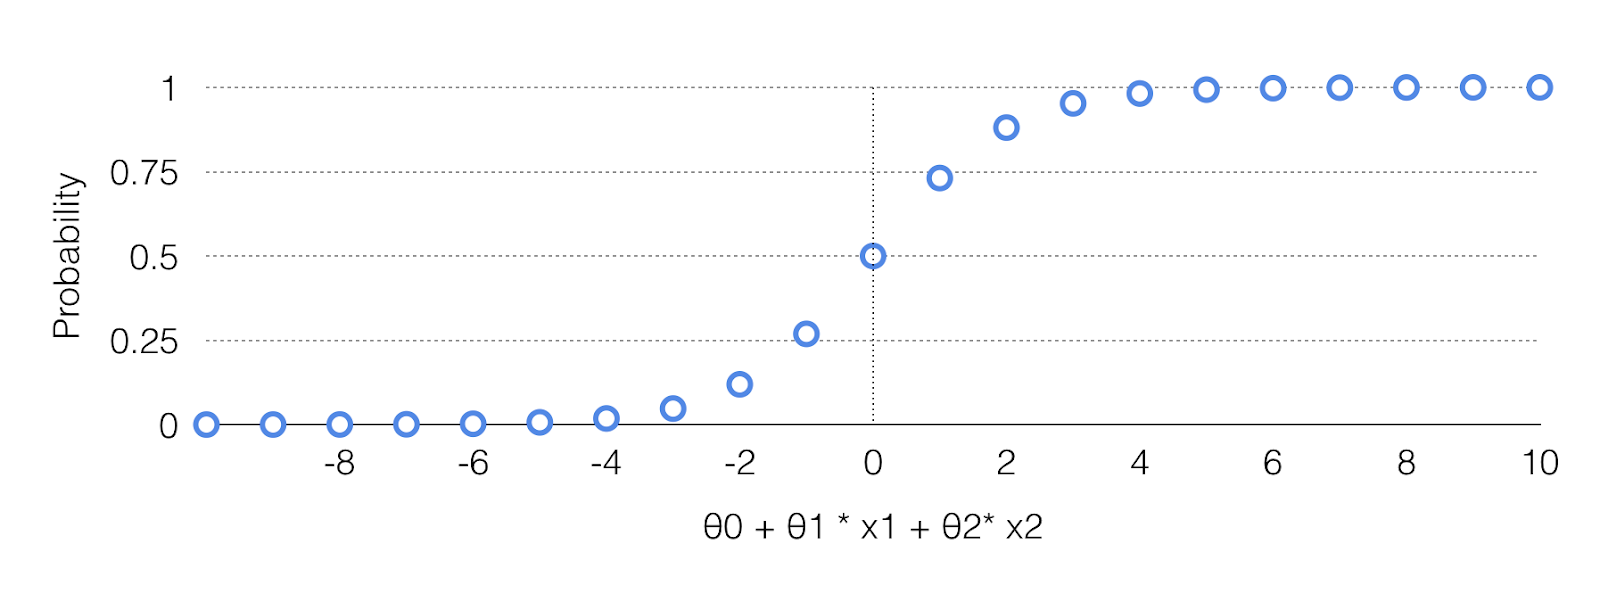 How to Predict Yes/No Outcomes Using Logistic Regression